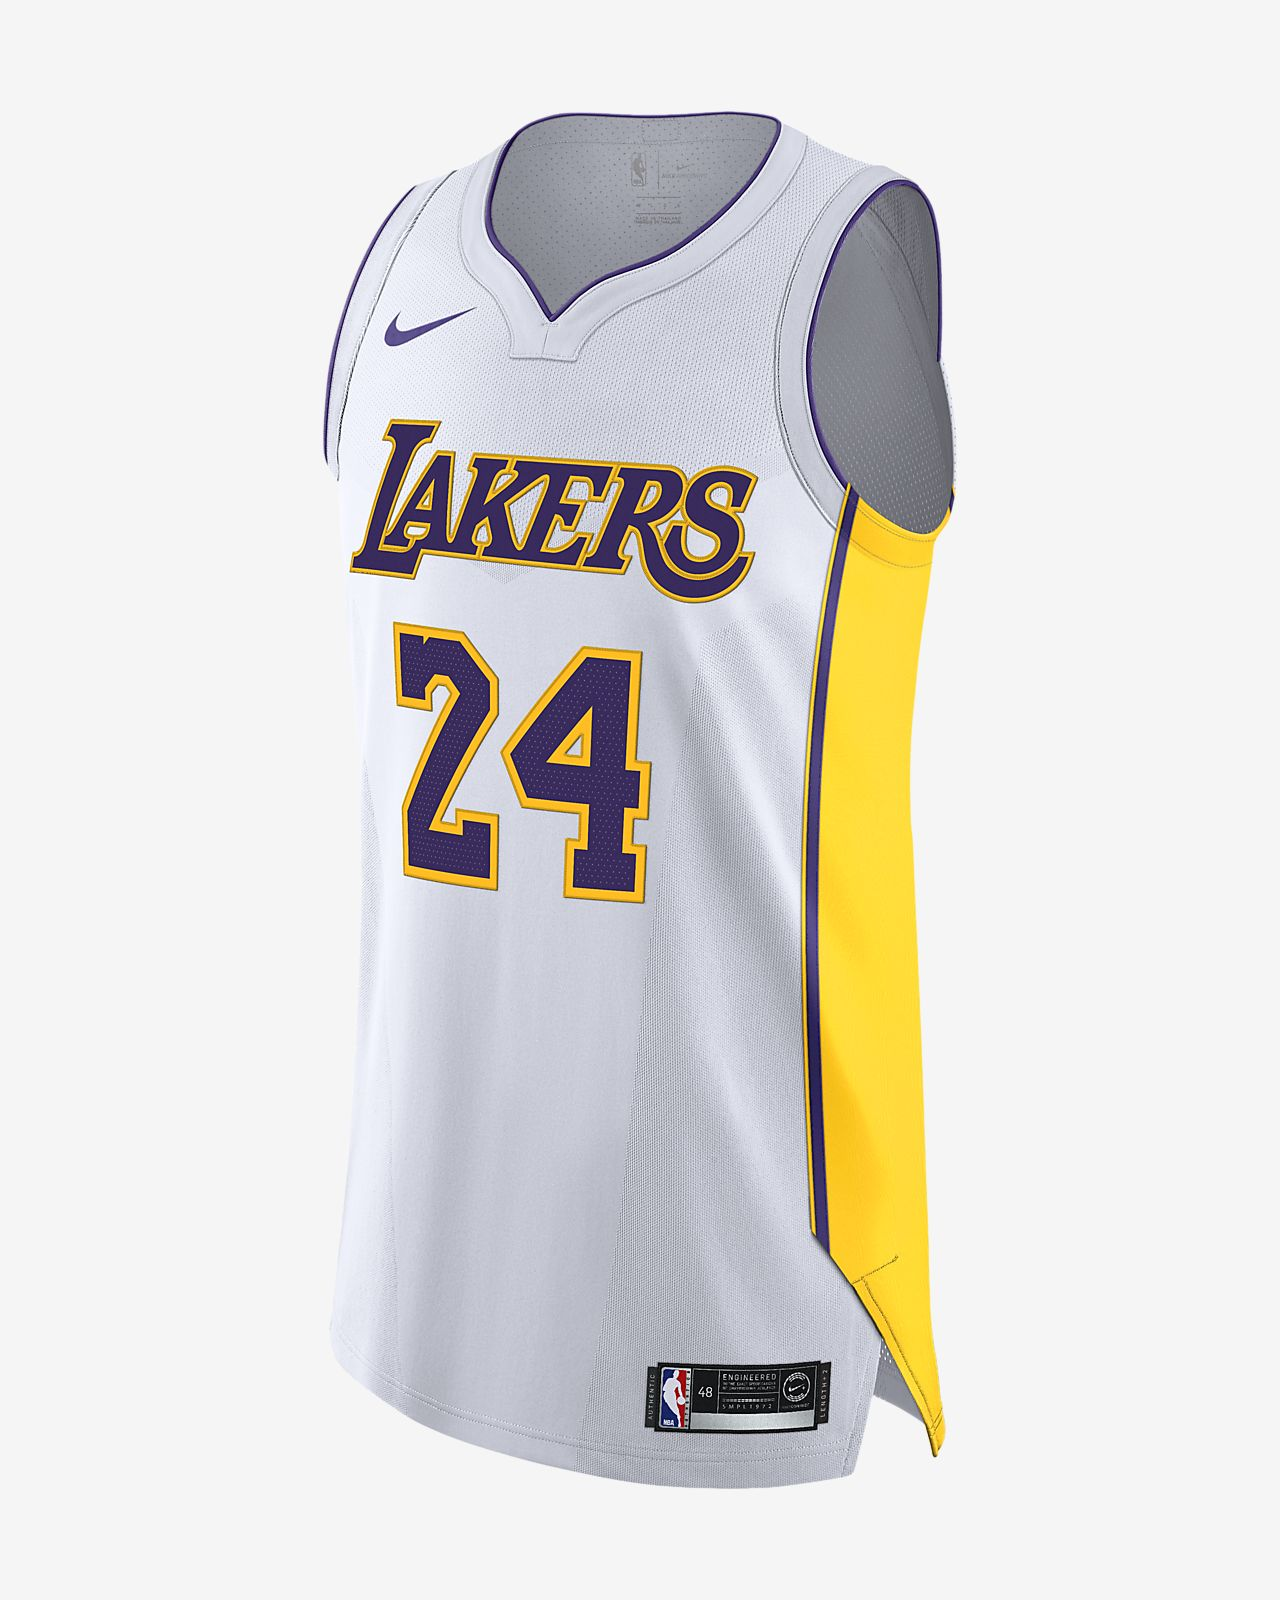 491100b06 ... Kobe Bryant Association Edition Authentic (Los Angeles Lakers) Camiseta  Nike NBA Connected - Hombre